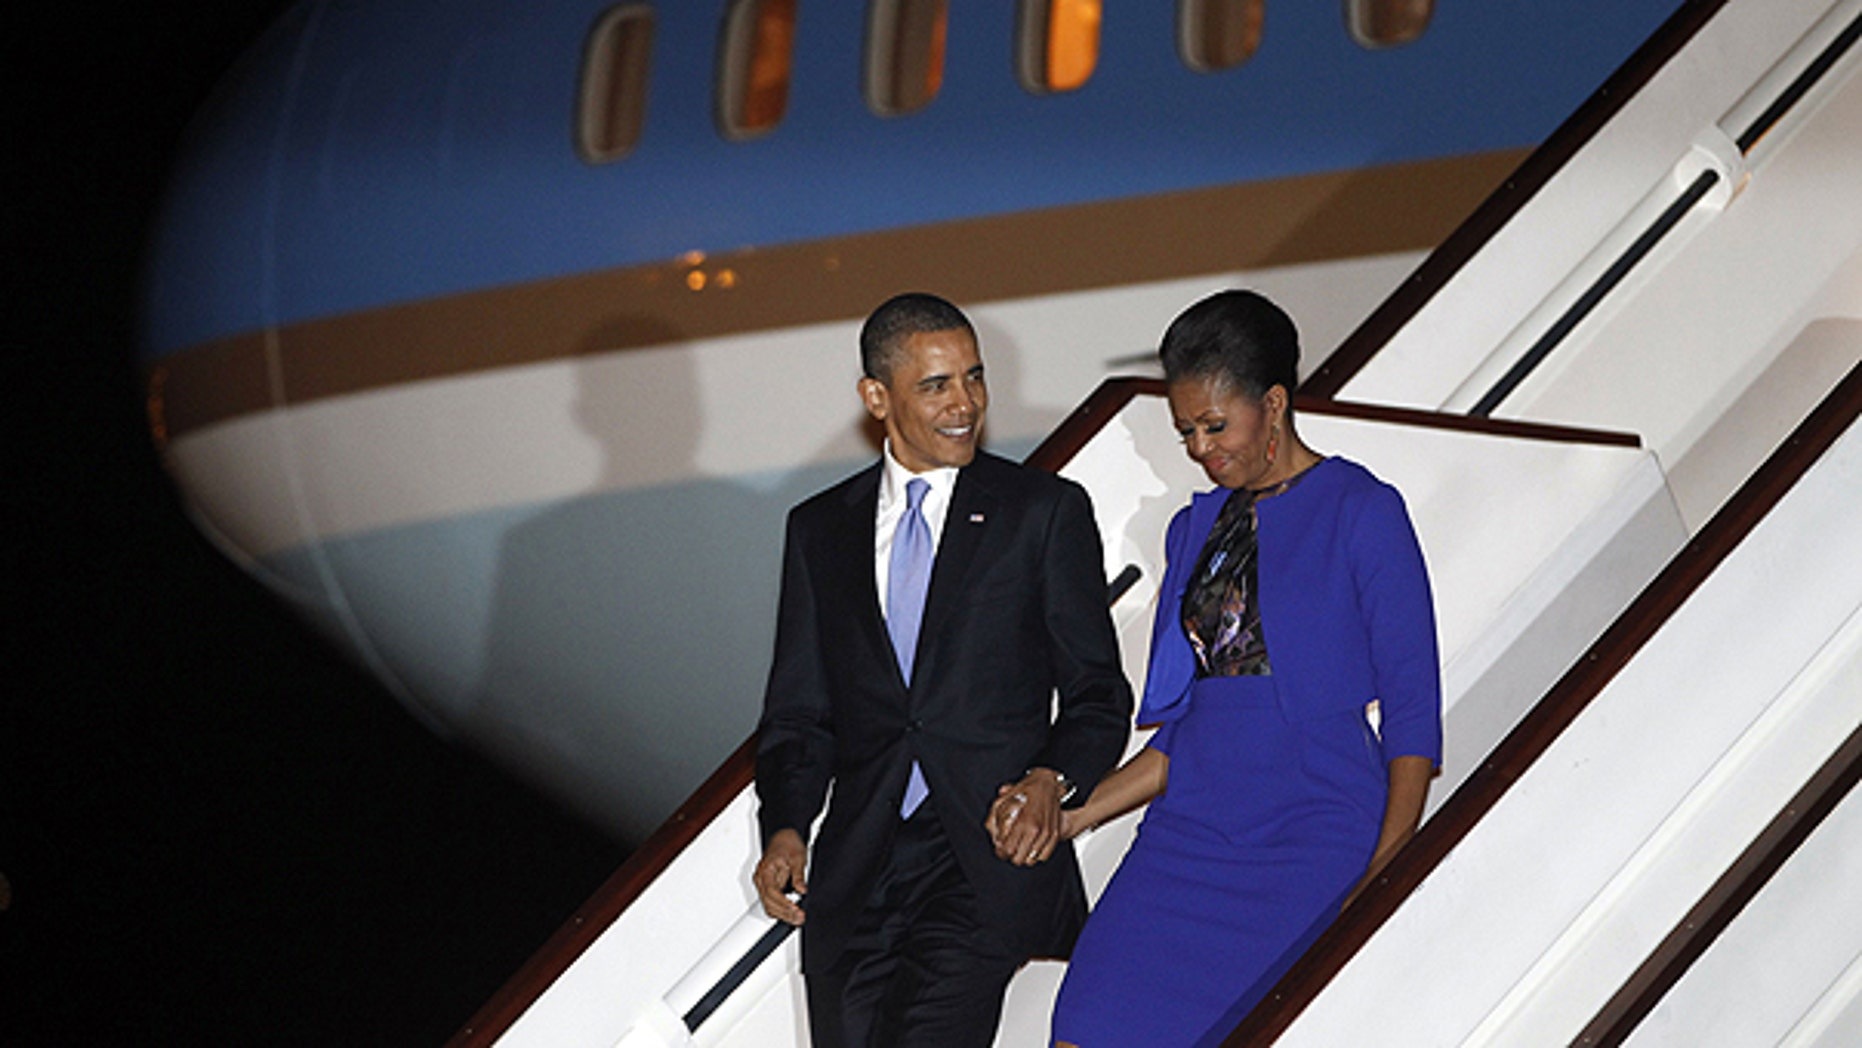 May 23: President Barack Obama and first lady Michelle Obama step off Air Force One as they arrive at London's Stansted Airport.